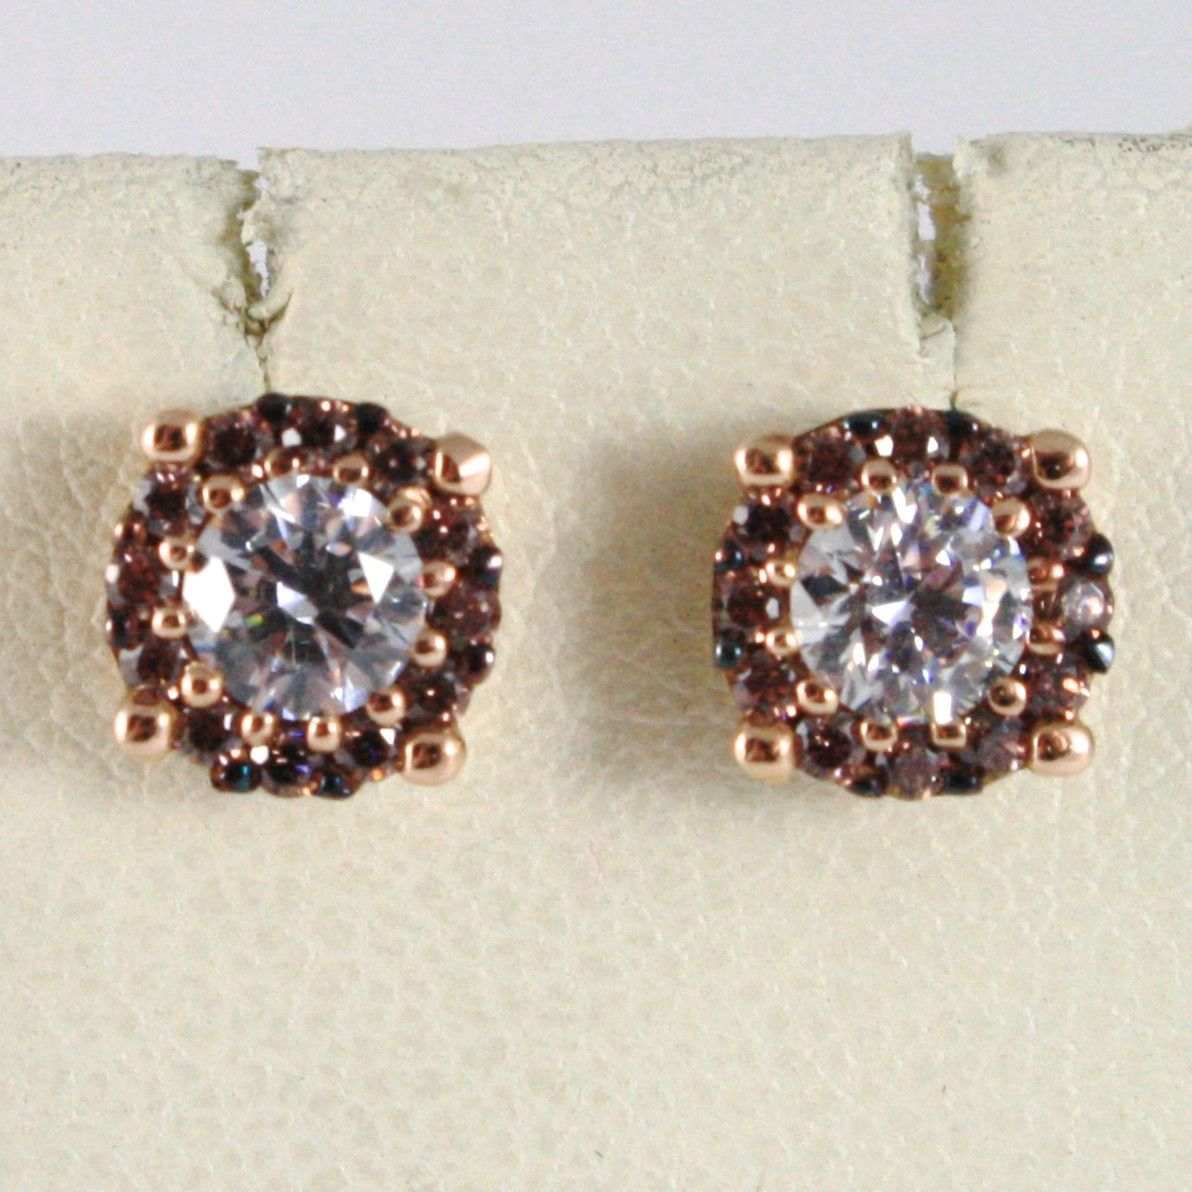 18K ROSE PINK GOLD EARRINGS WITH ZIRCONIA, BROWN AND WHITE, MADE IN ITALY